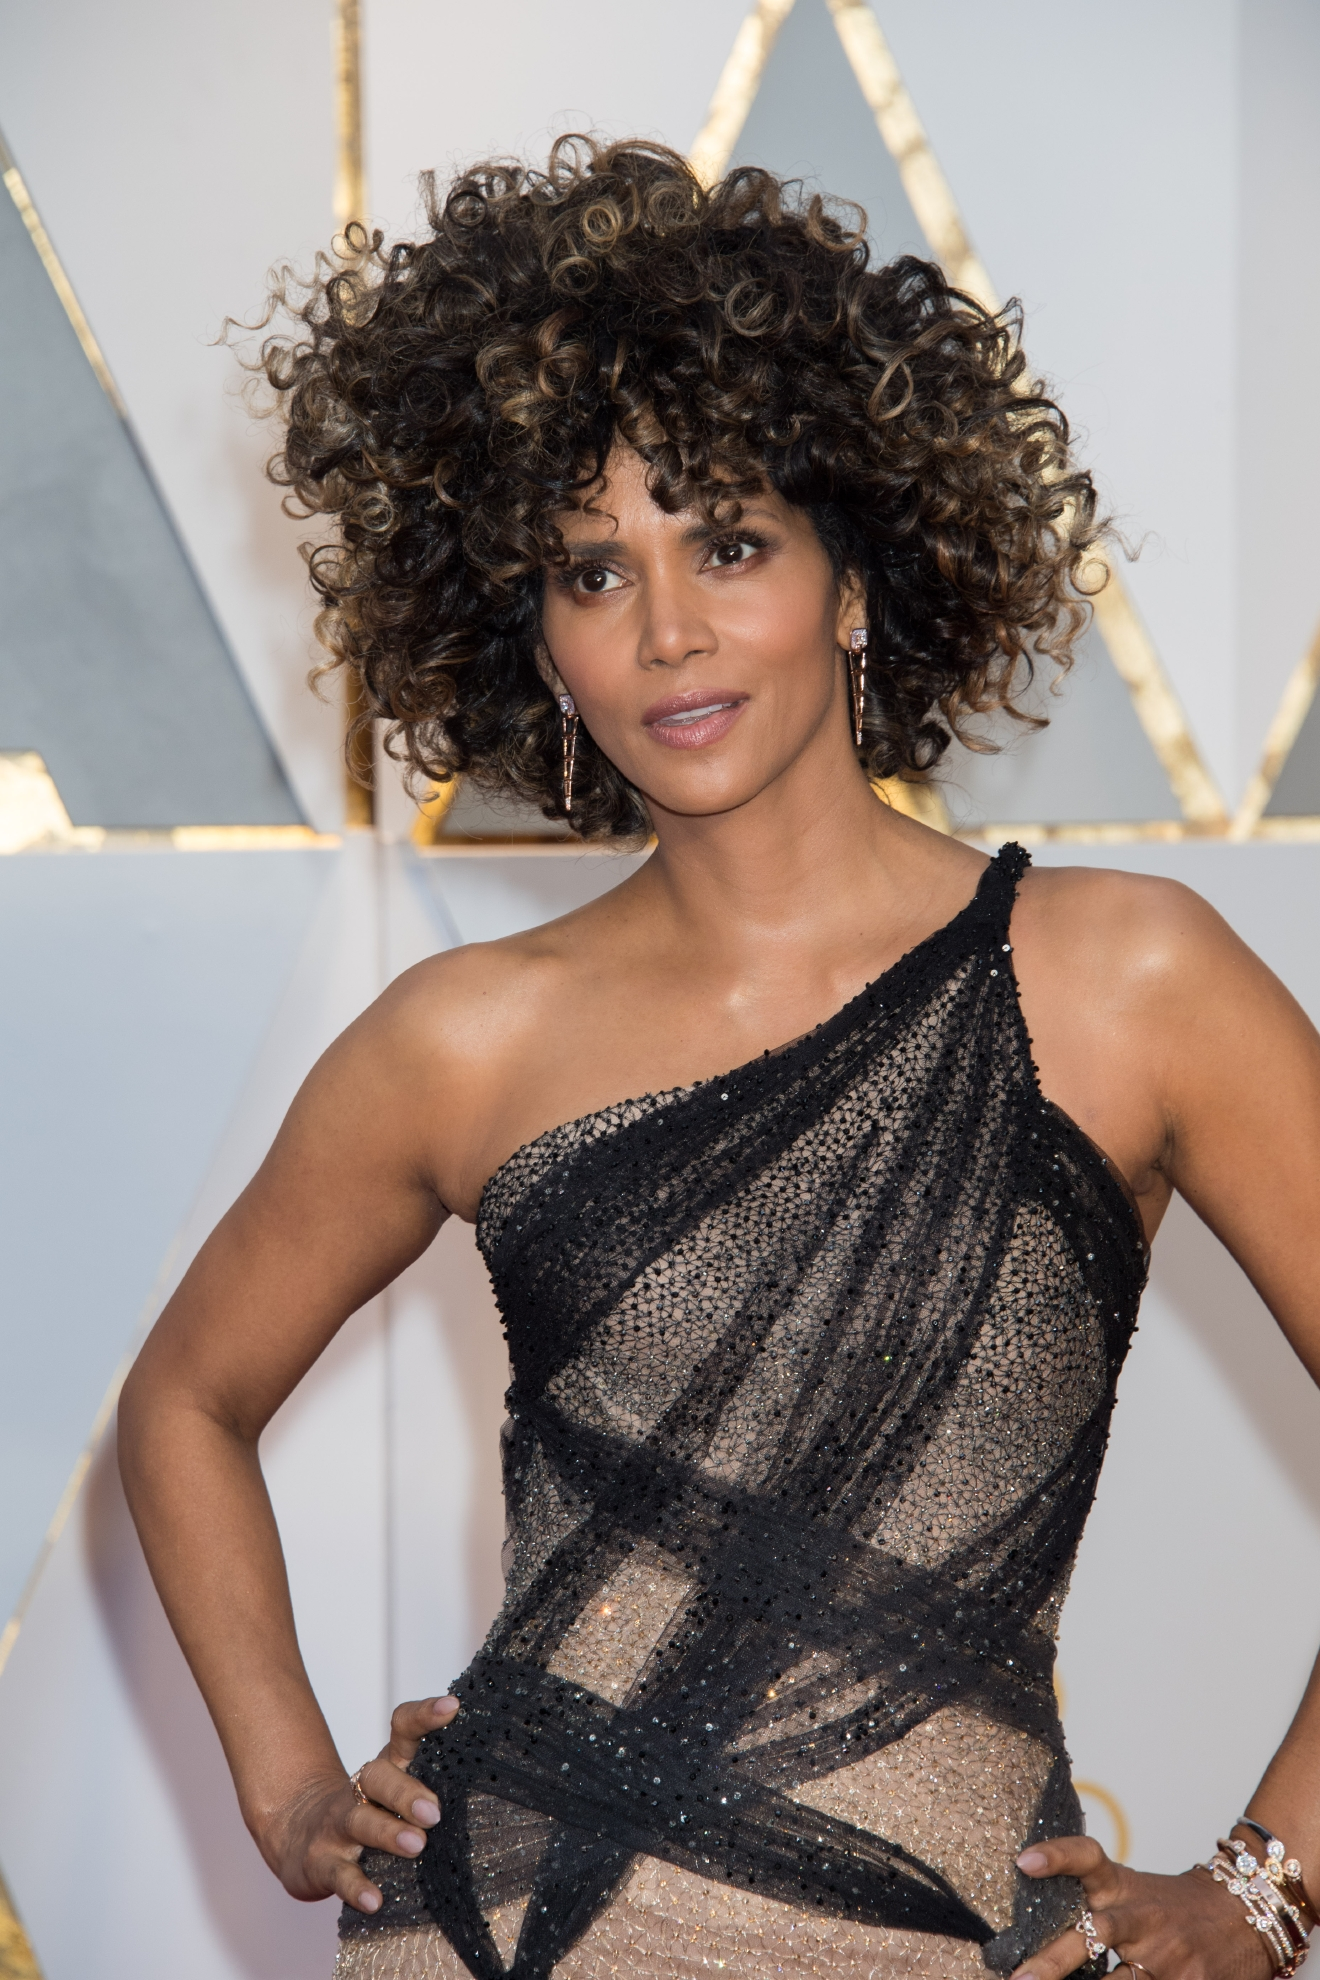 #30: Halle Berry. Hair? #1. Dress? #30. (Image: AMPAS)